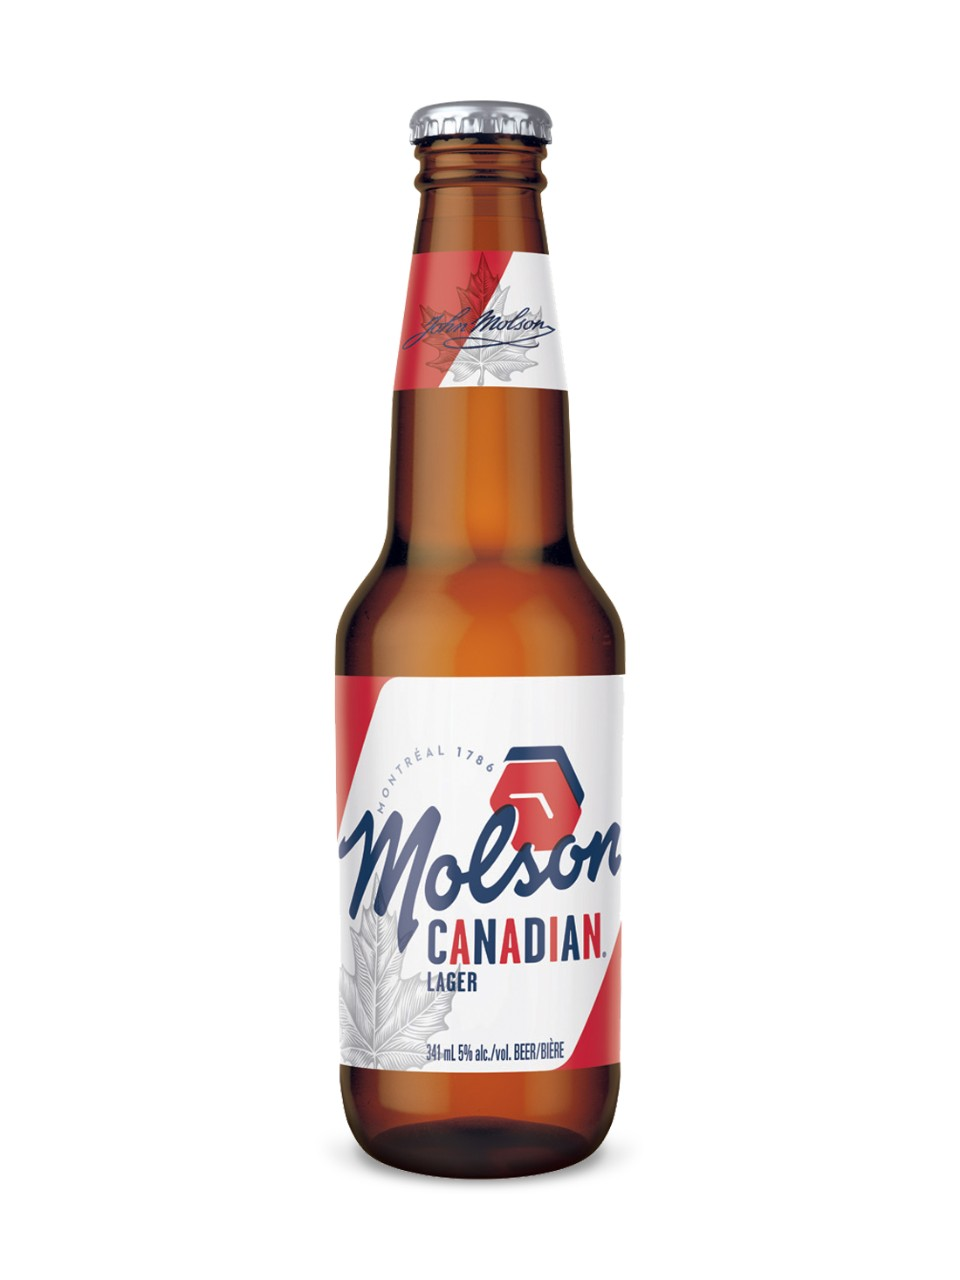 Molson Canadian from LCBO